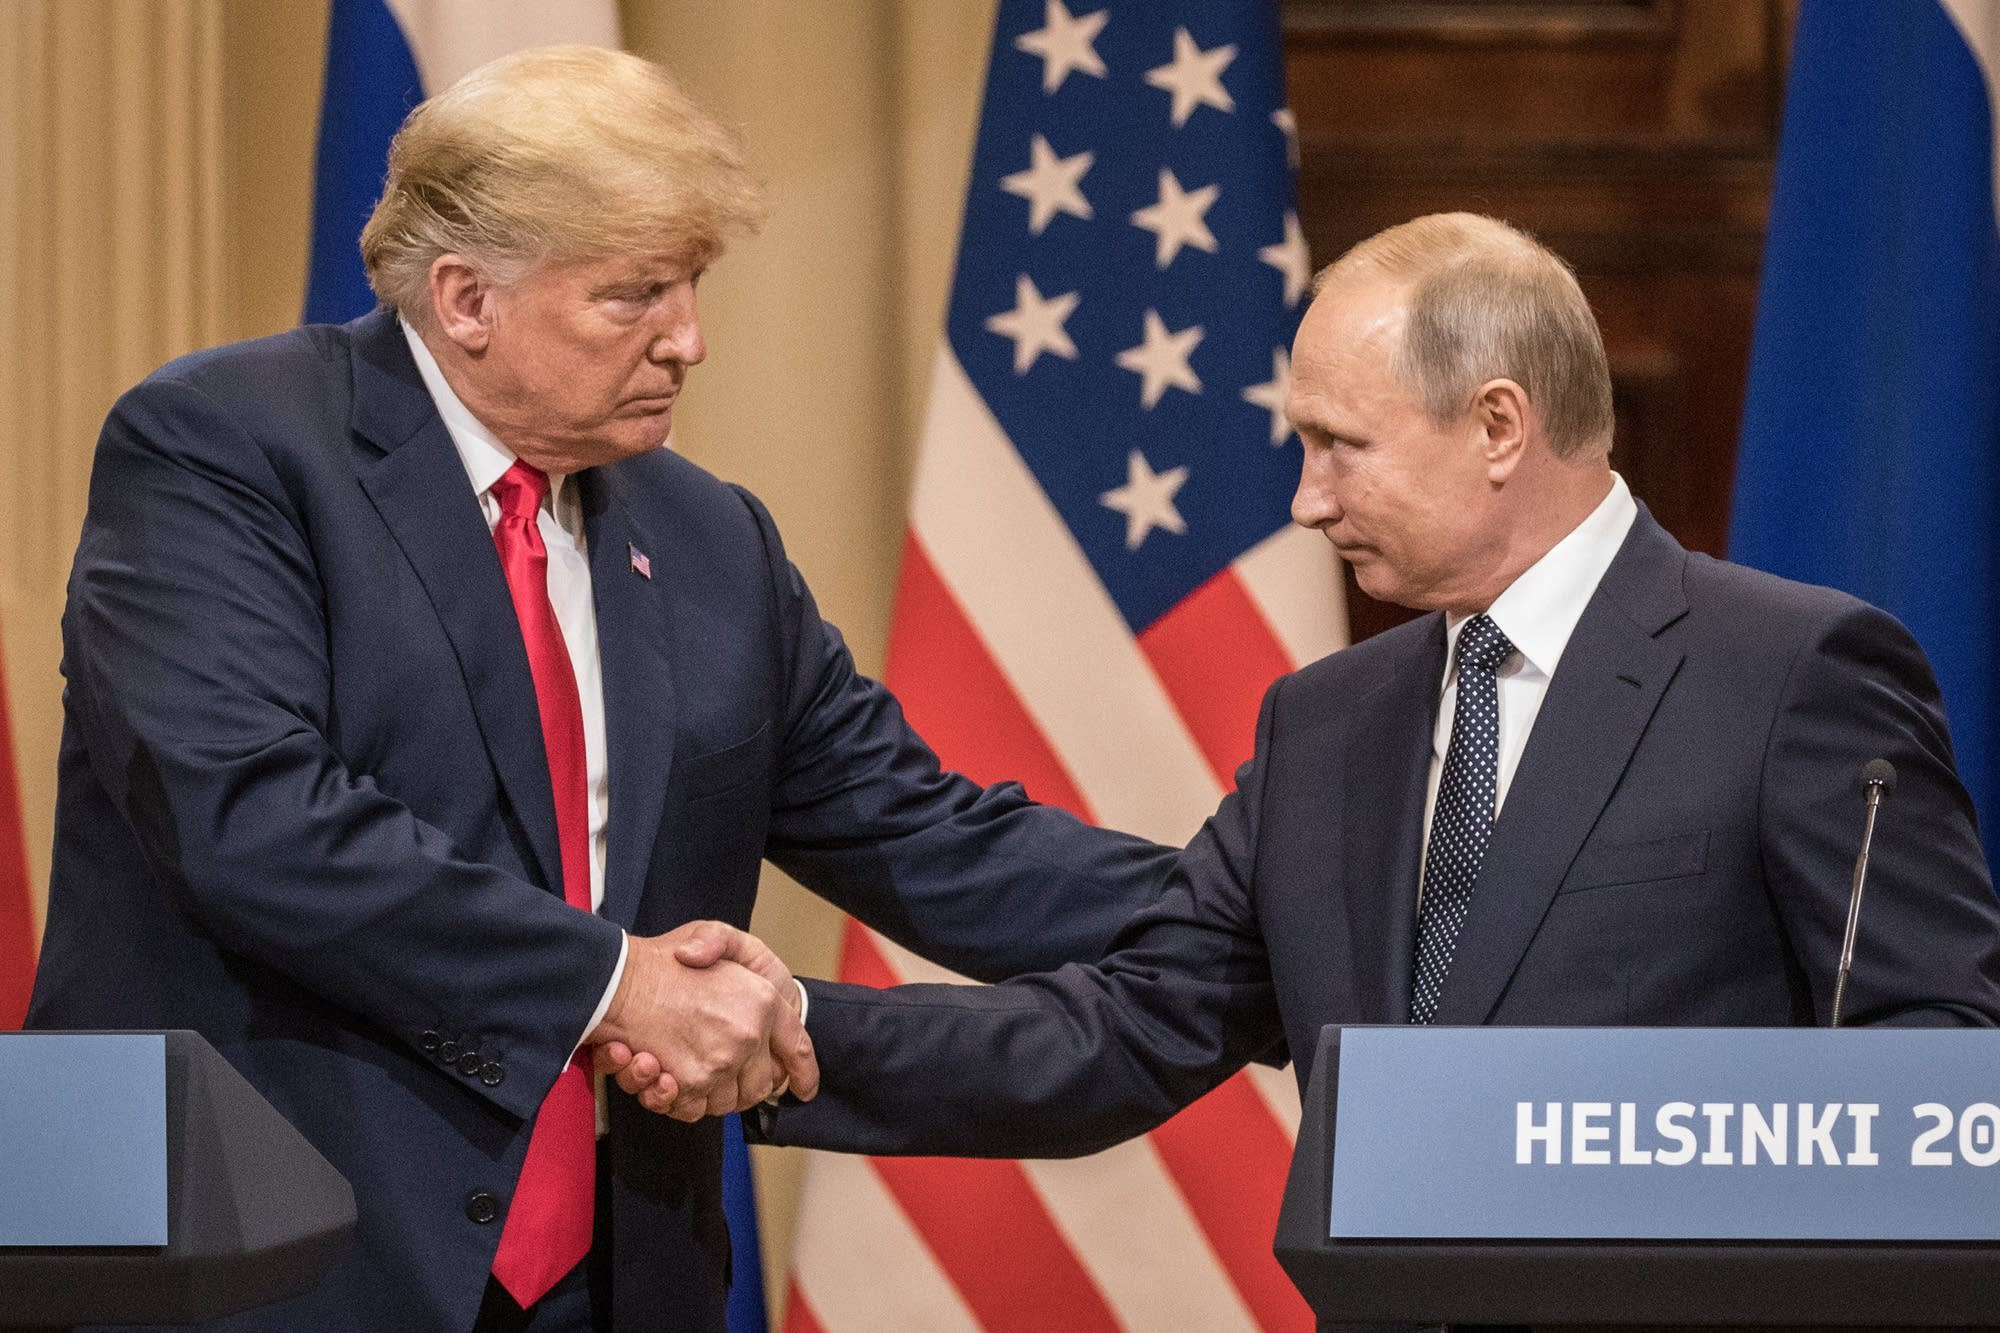 President Trump and President Putin hold a joint news conference.